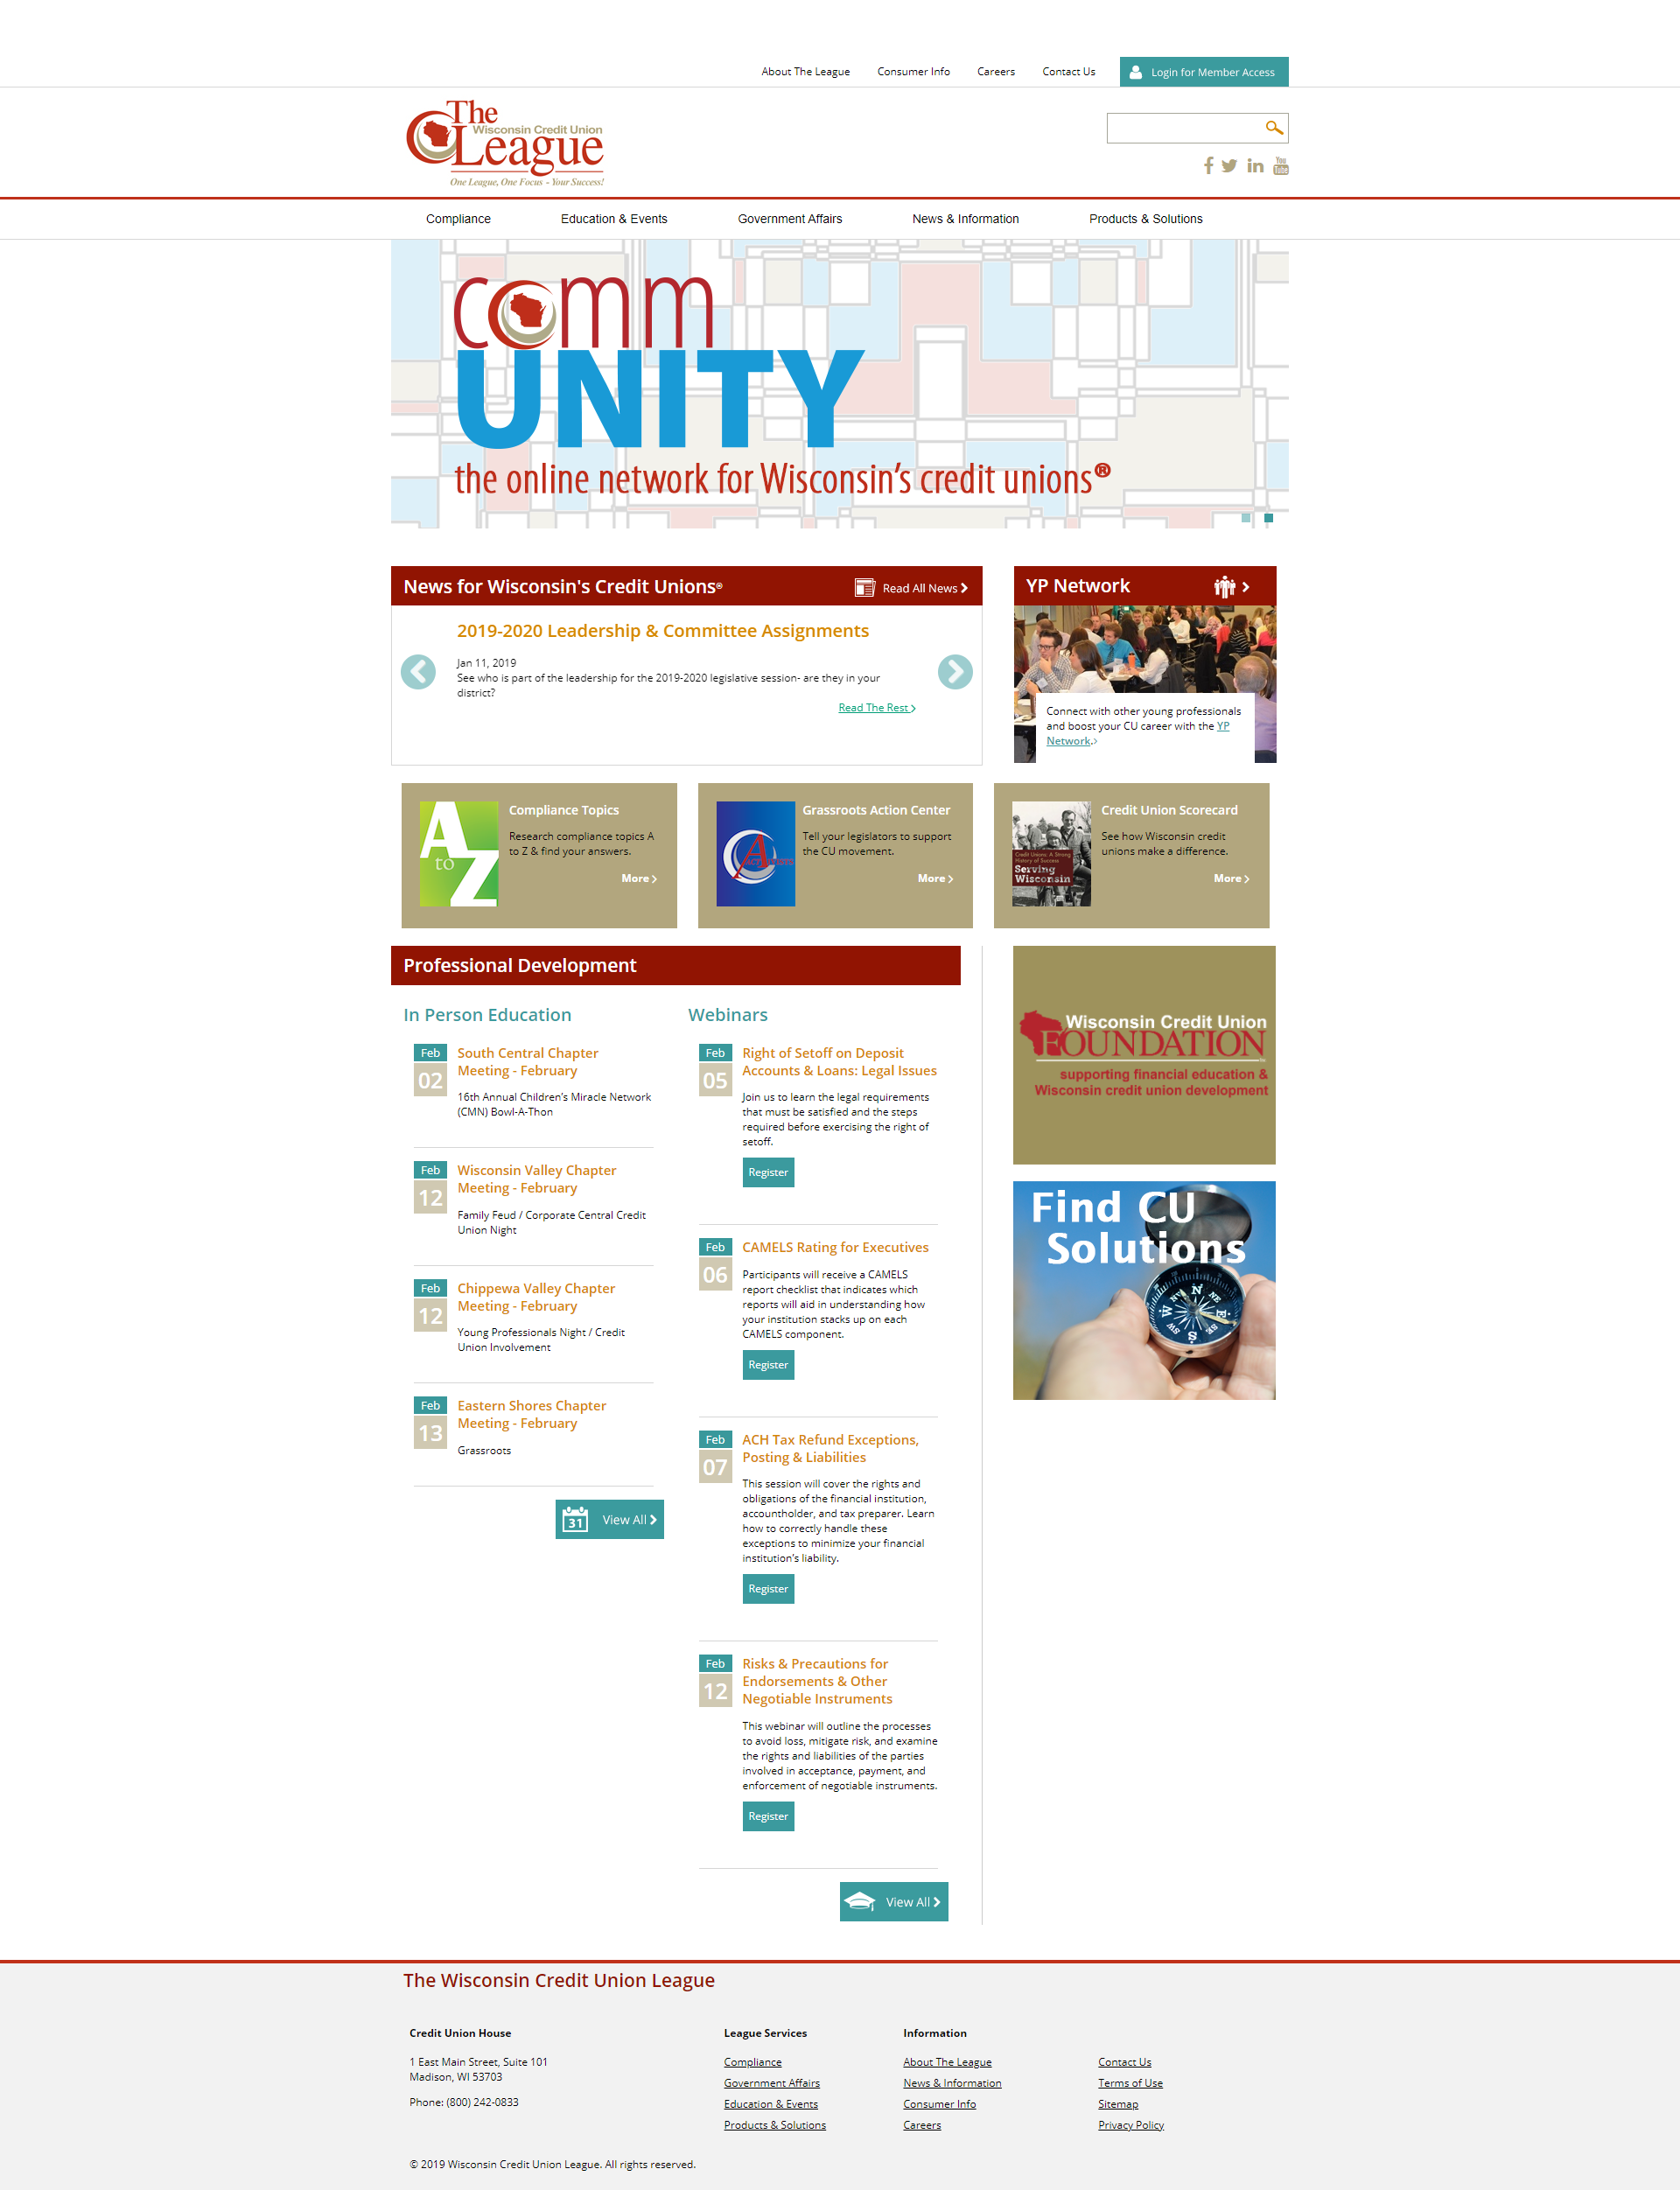 screencapture-web-archive-org-web-20190201204854-https-www-theleague-coop-2021-02-08-15_13_32